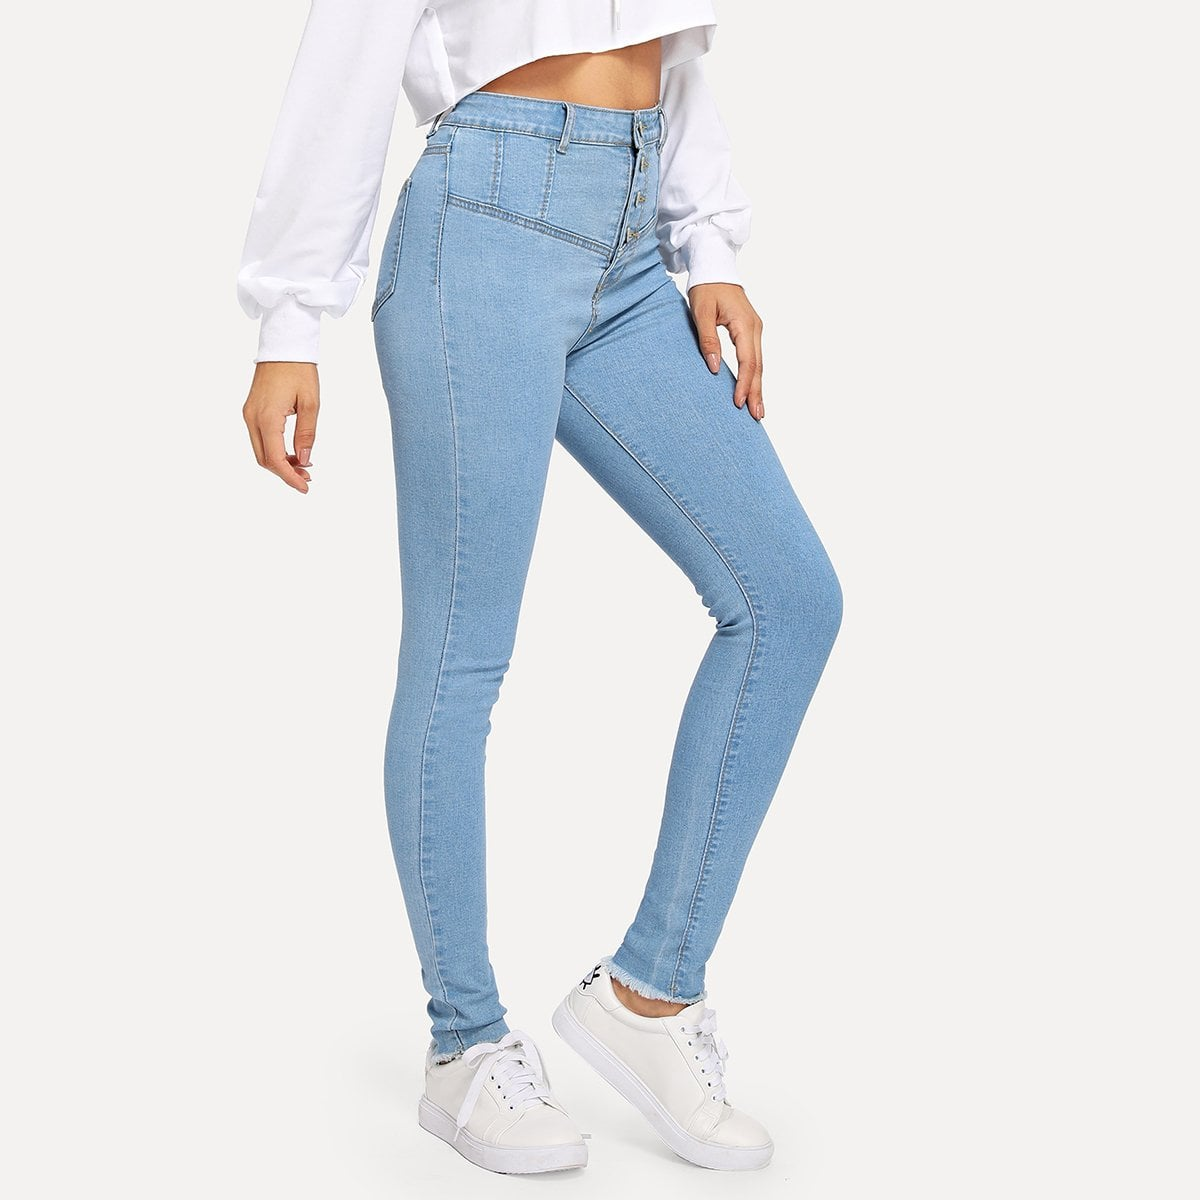 Button Front Washed Jeans in Blue by ROMWE on GOOFASH